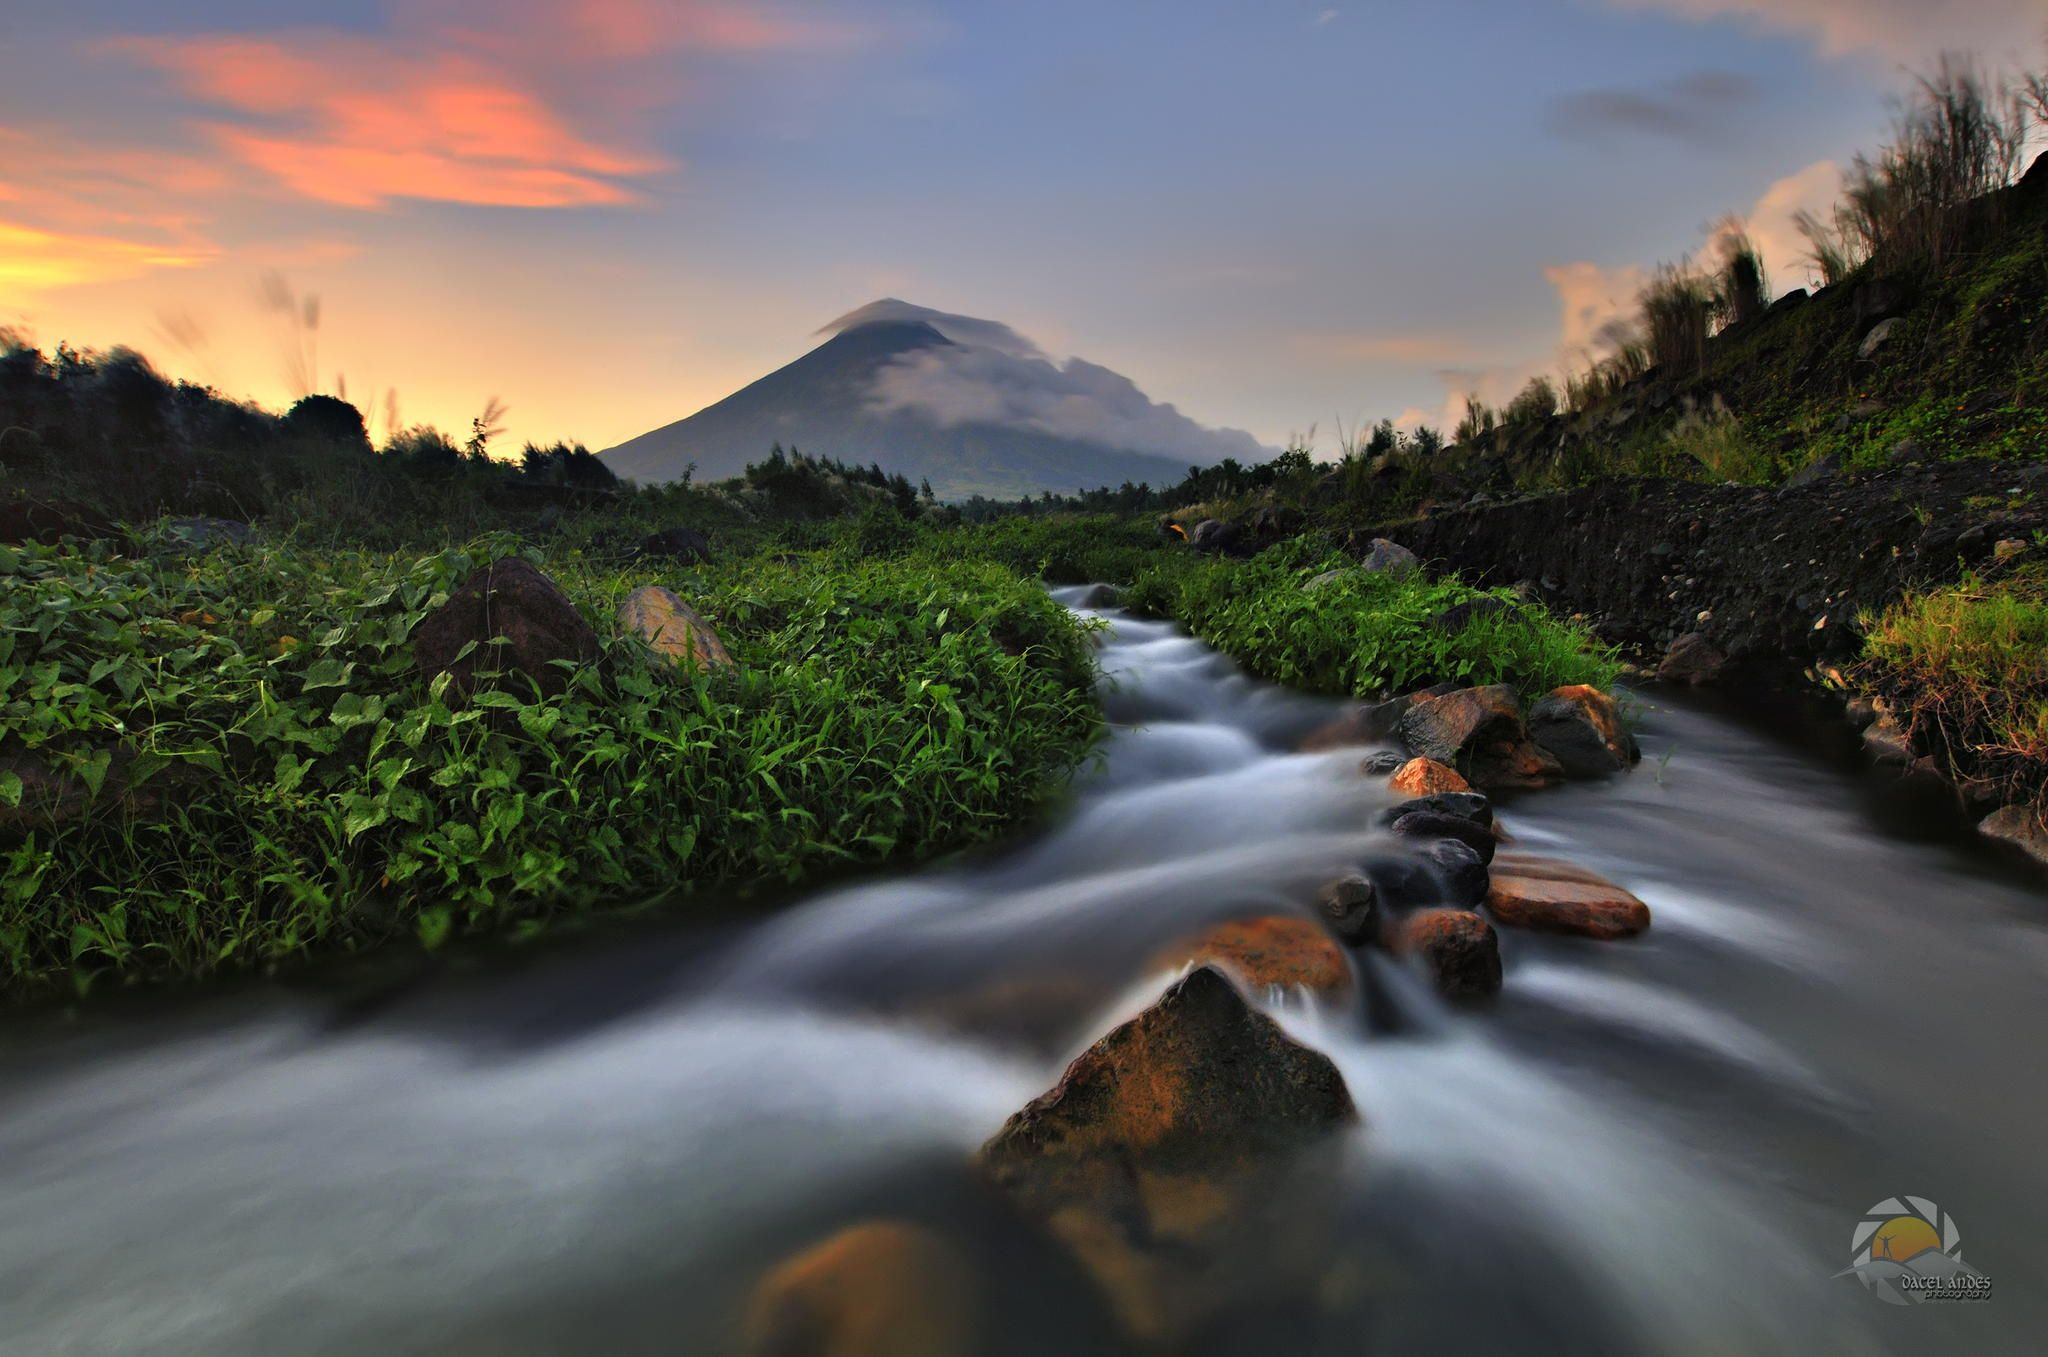 Photograph S P I N E By Dacel Andes On 500px